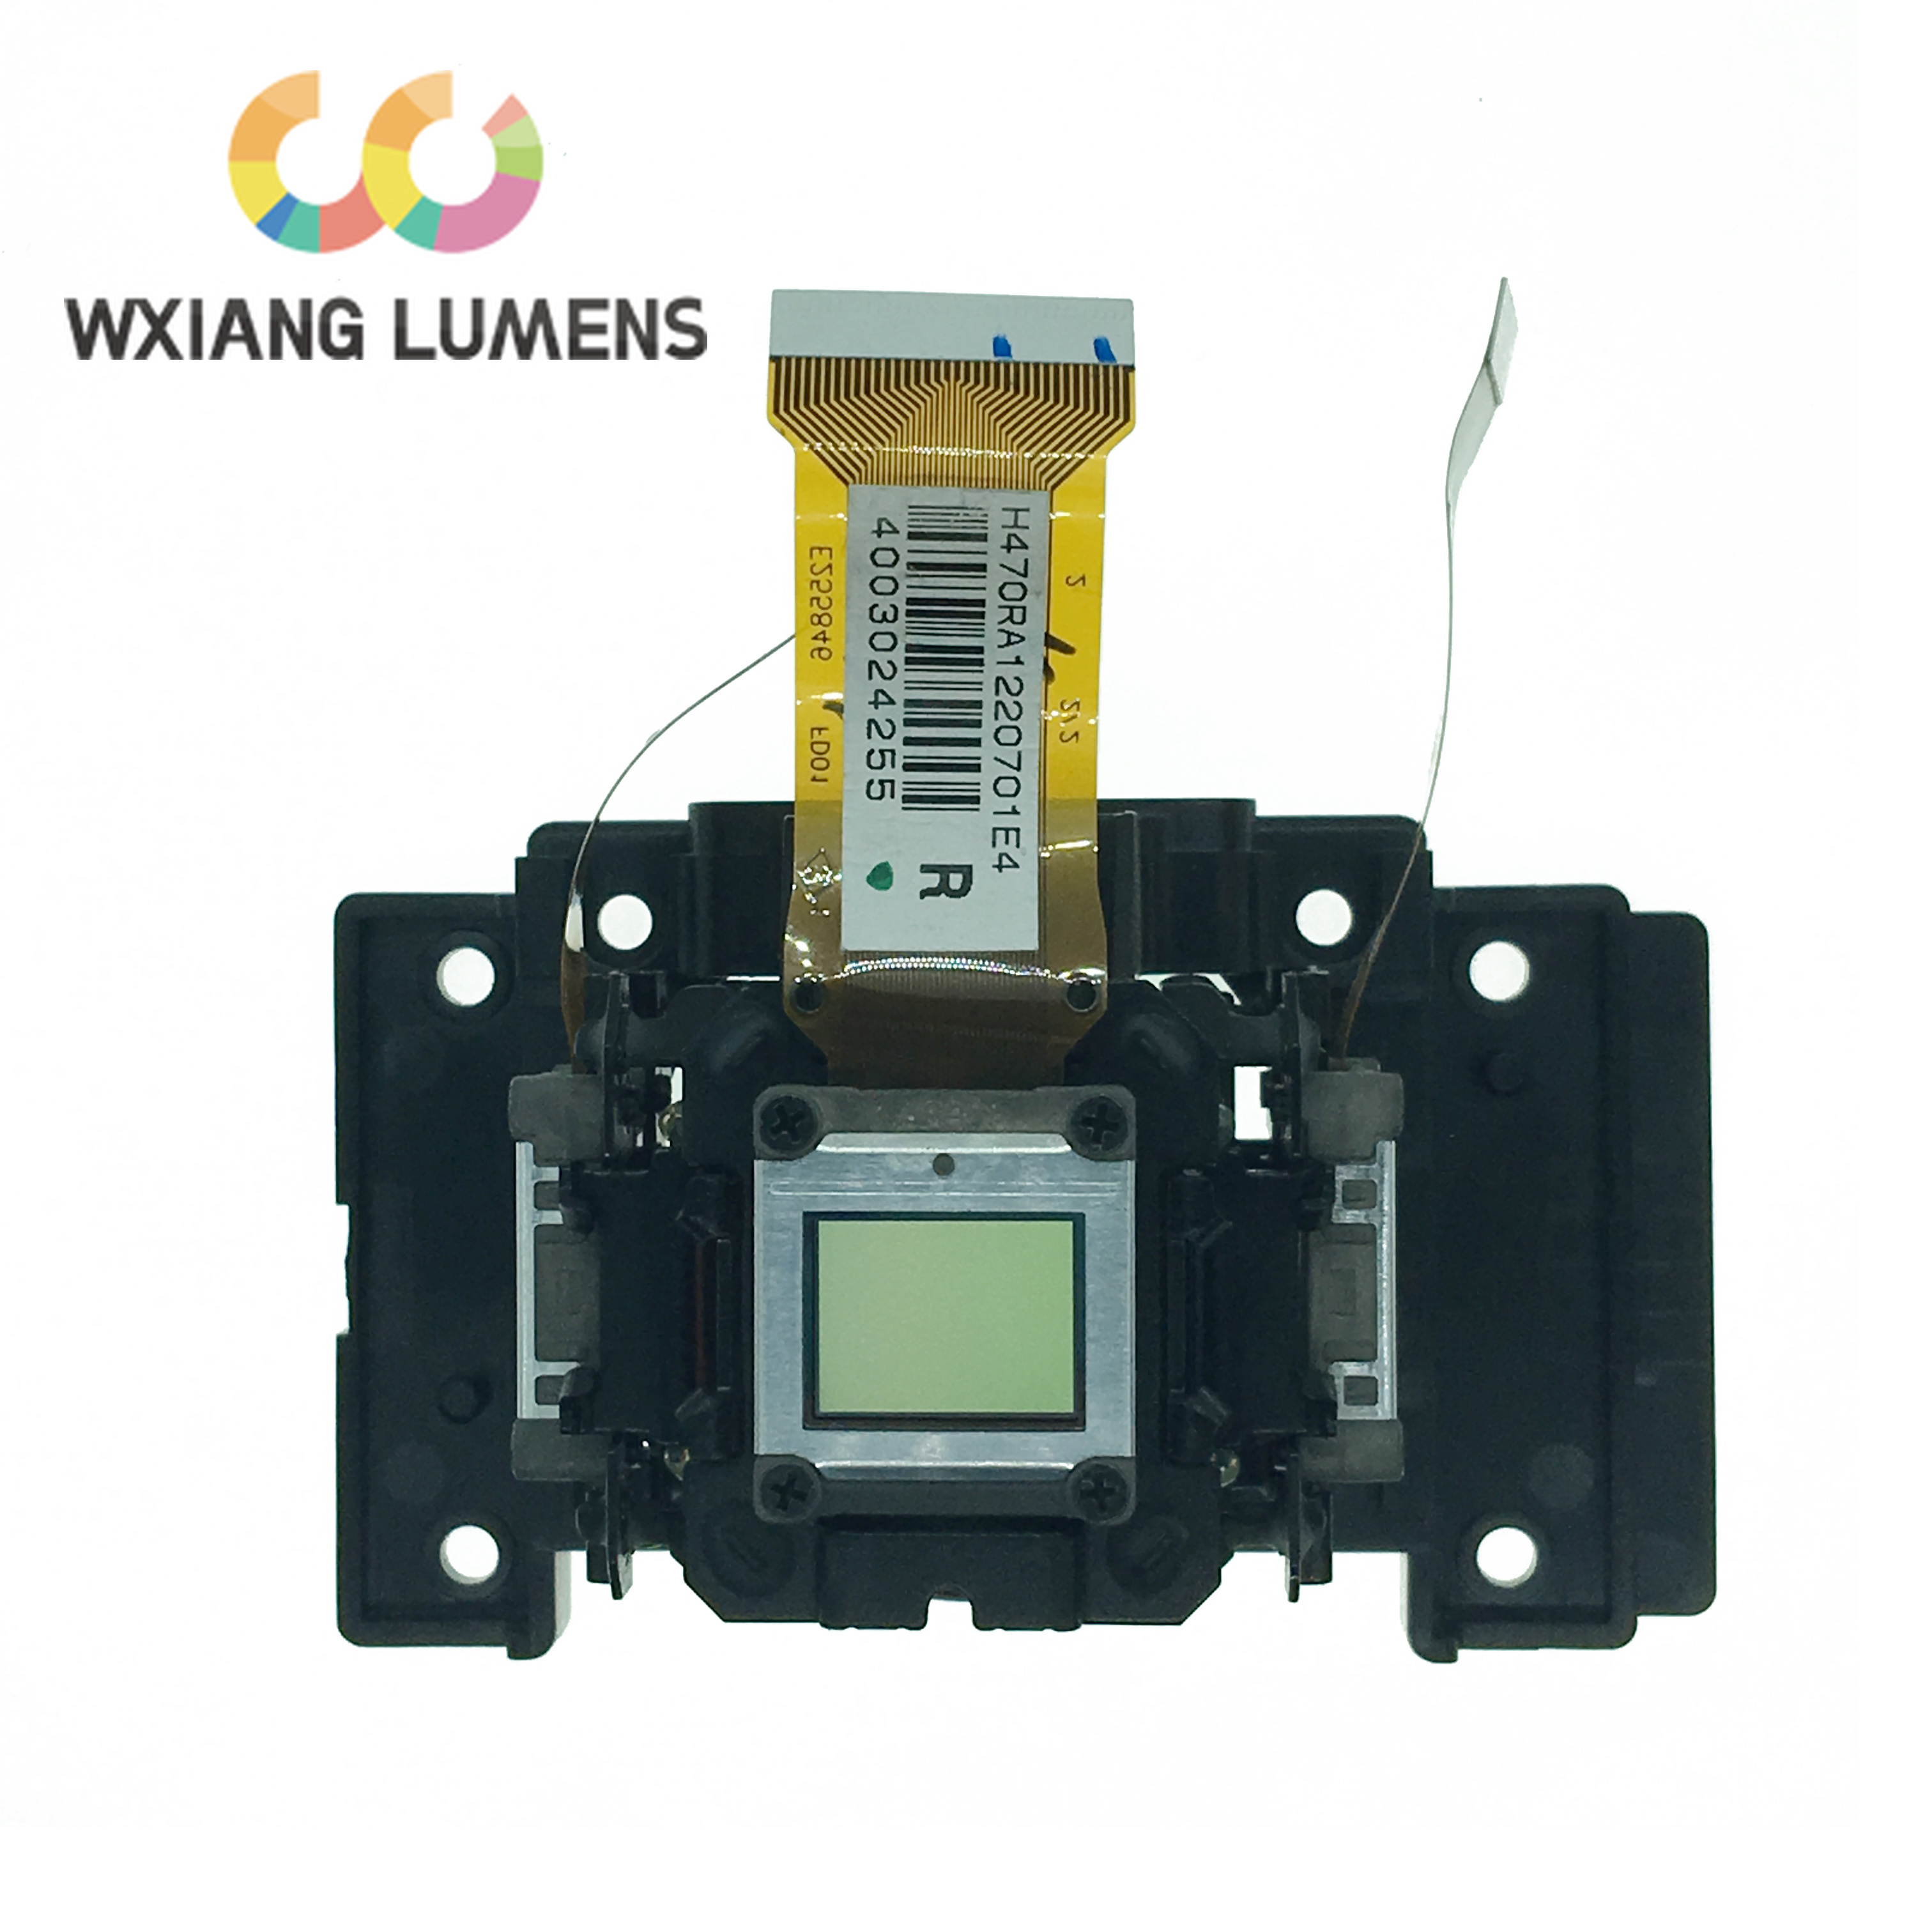 Optic Engine LCD Prism Assy Projector Optical Block H470 LCD Panel For EPSON EB-1940/1950/1960/1955/1945/1965 Projector Parts